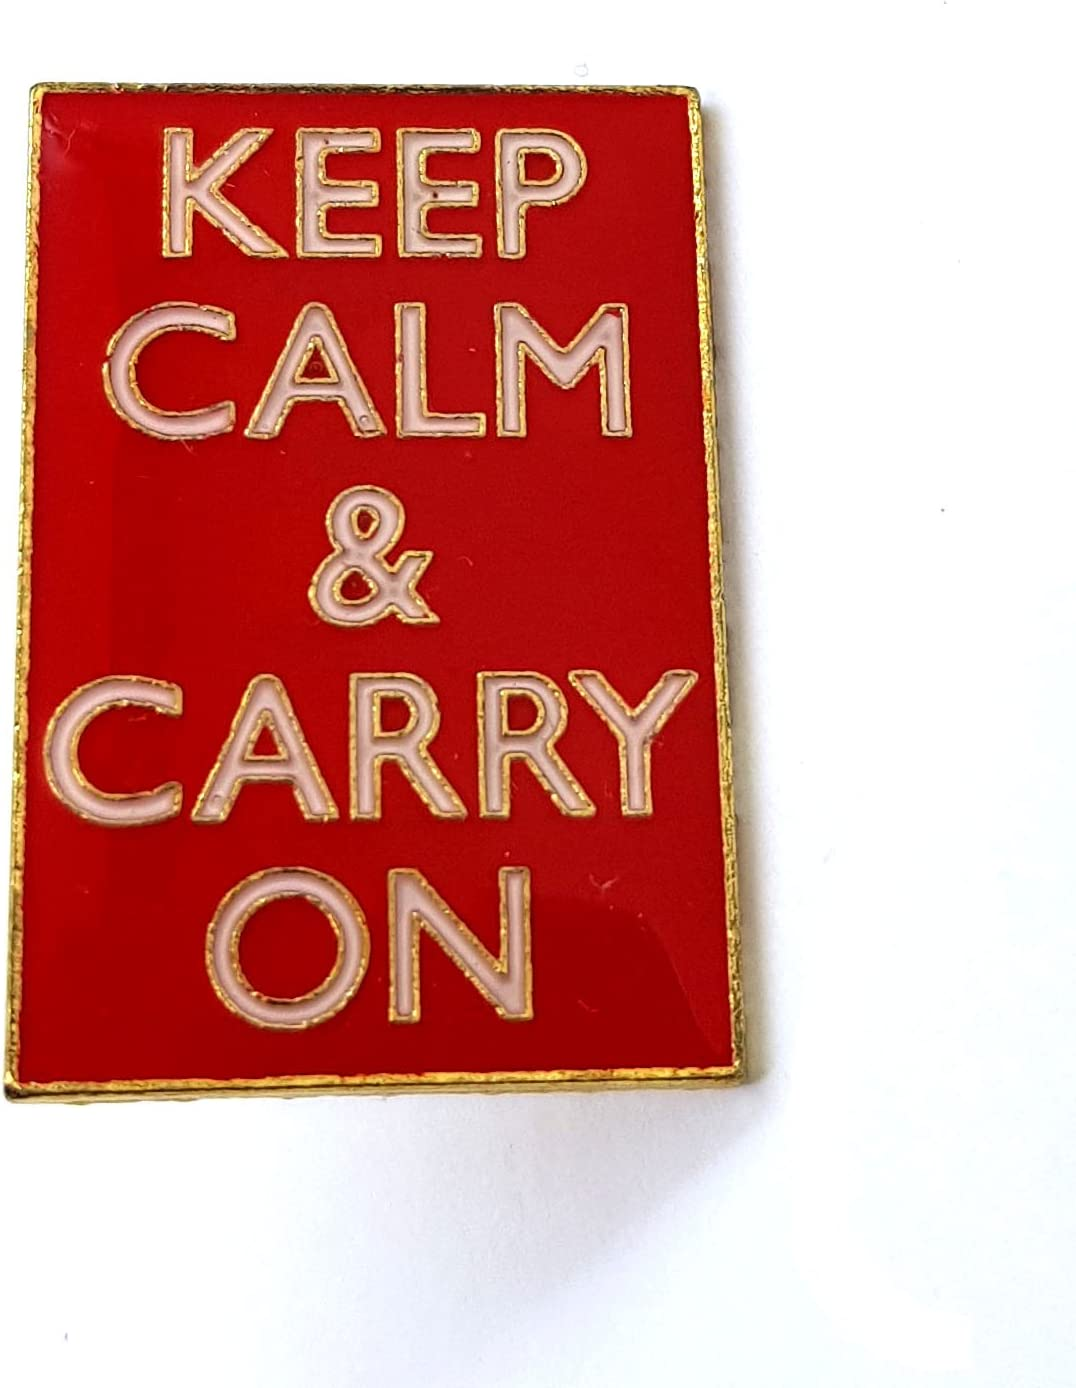 British KEEP CALM and CARRY ON Pin Badge Metal Enamelled WW2 Poster Accessory